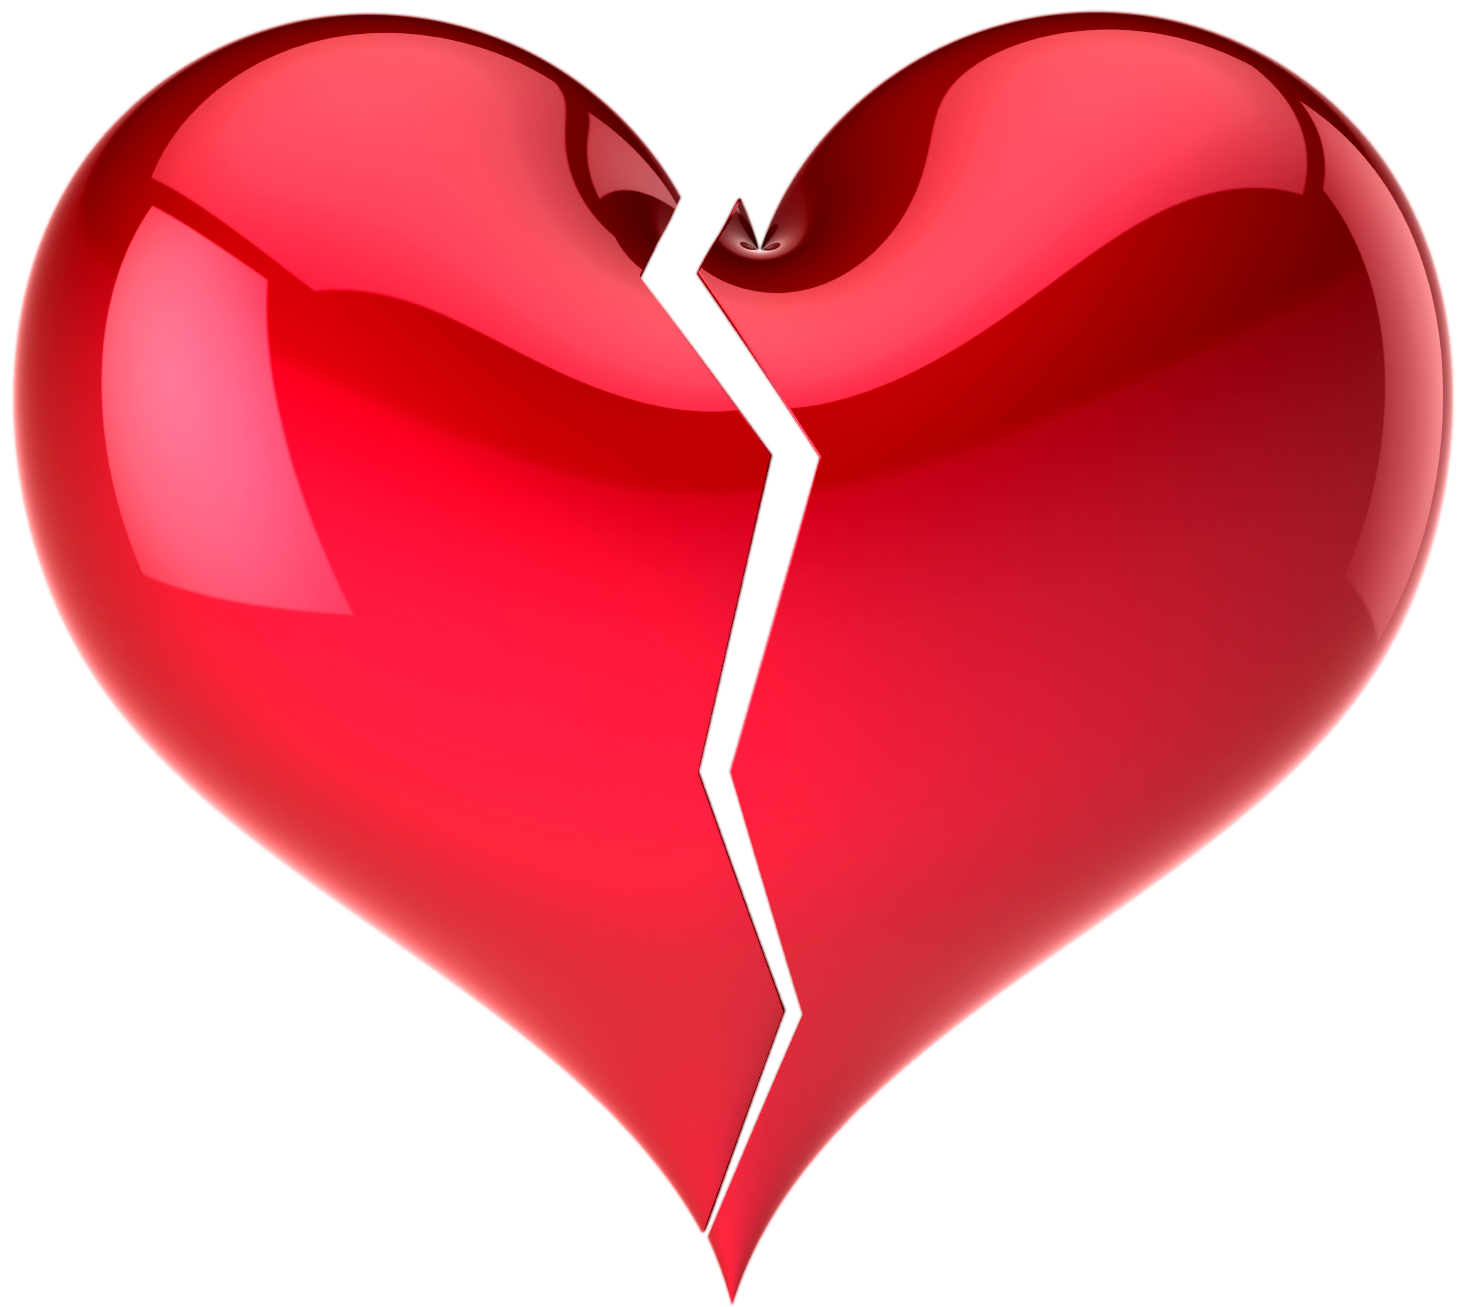 HEART PNG IMAGES AND CLIPART FREE DOWNLOAD with transparent Background